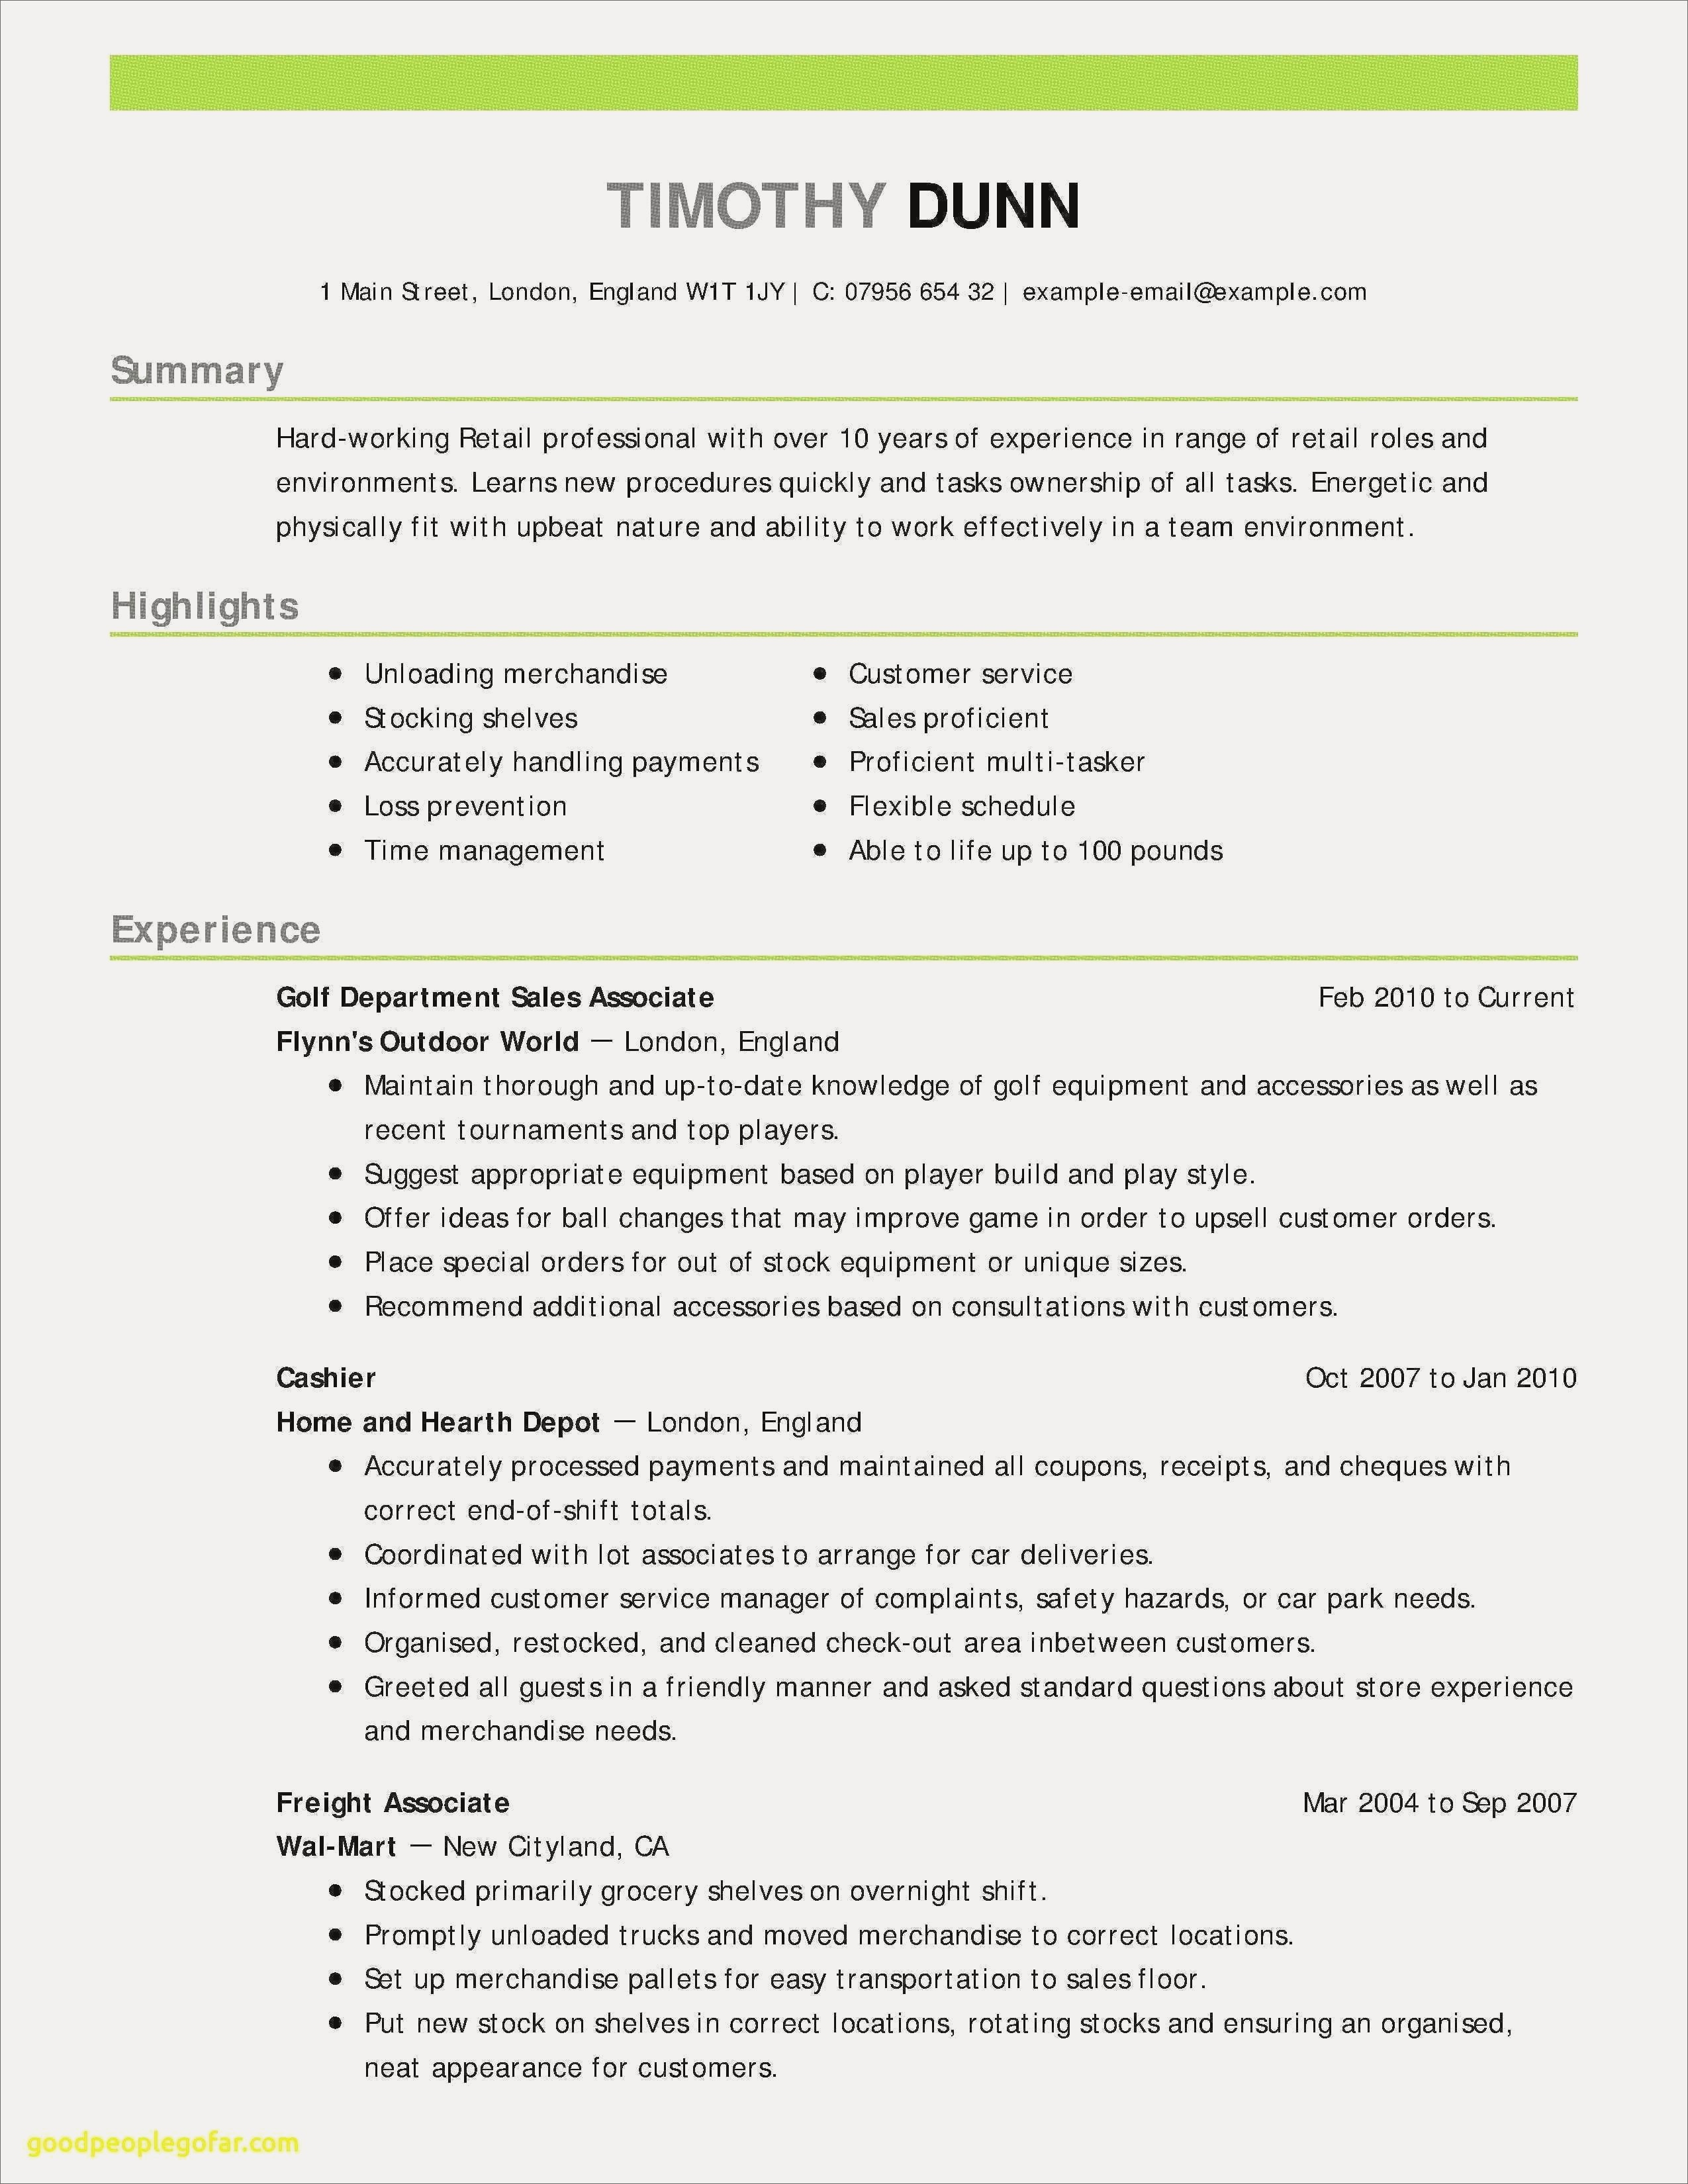 Service Industry Resume Template - Valet Parking Resume Sample Refrence Customer Service Resume Sample